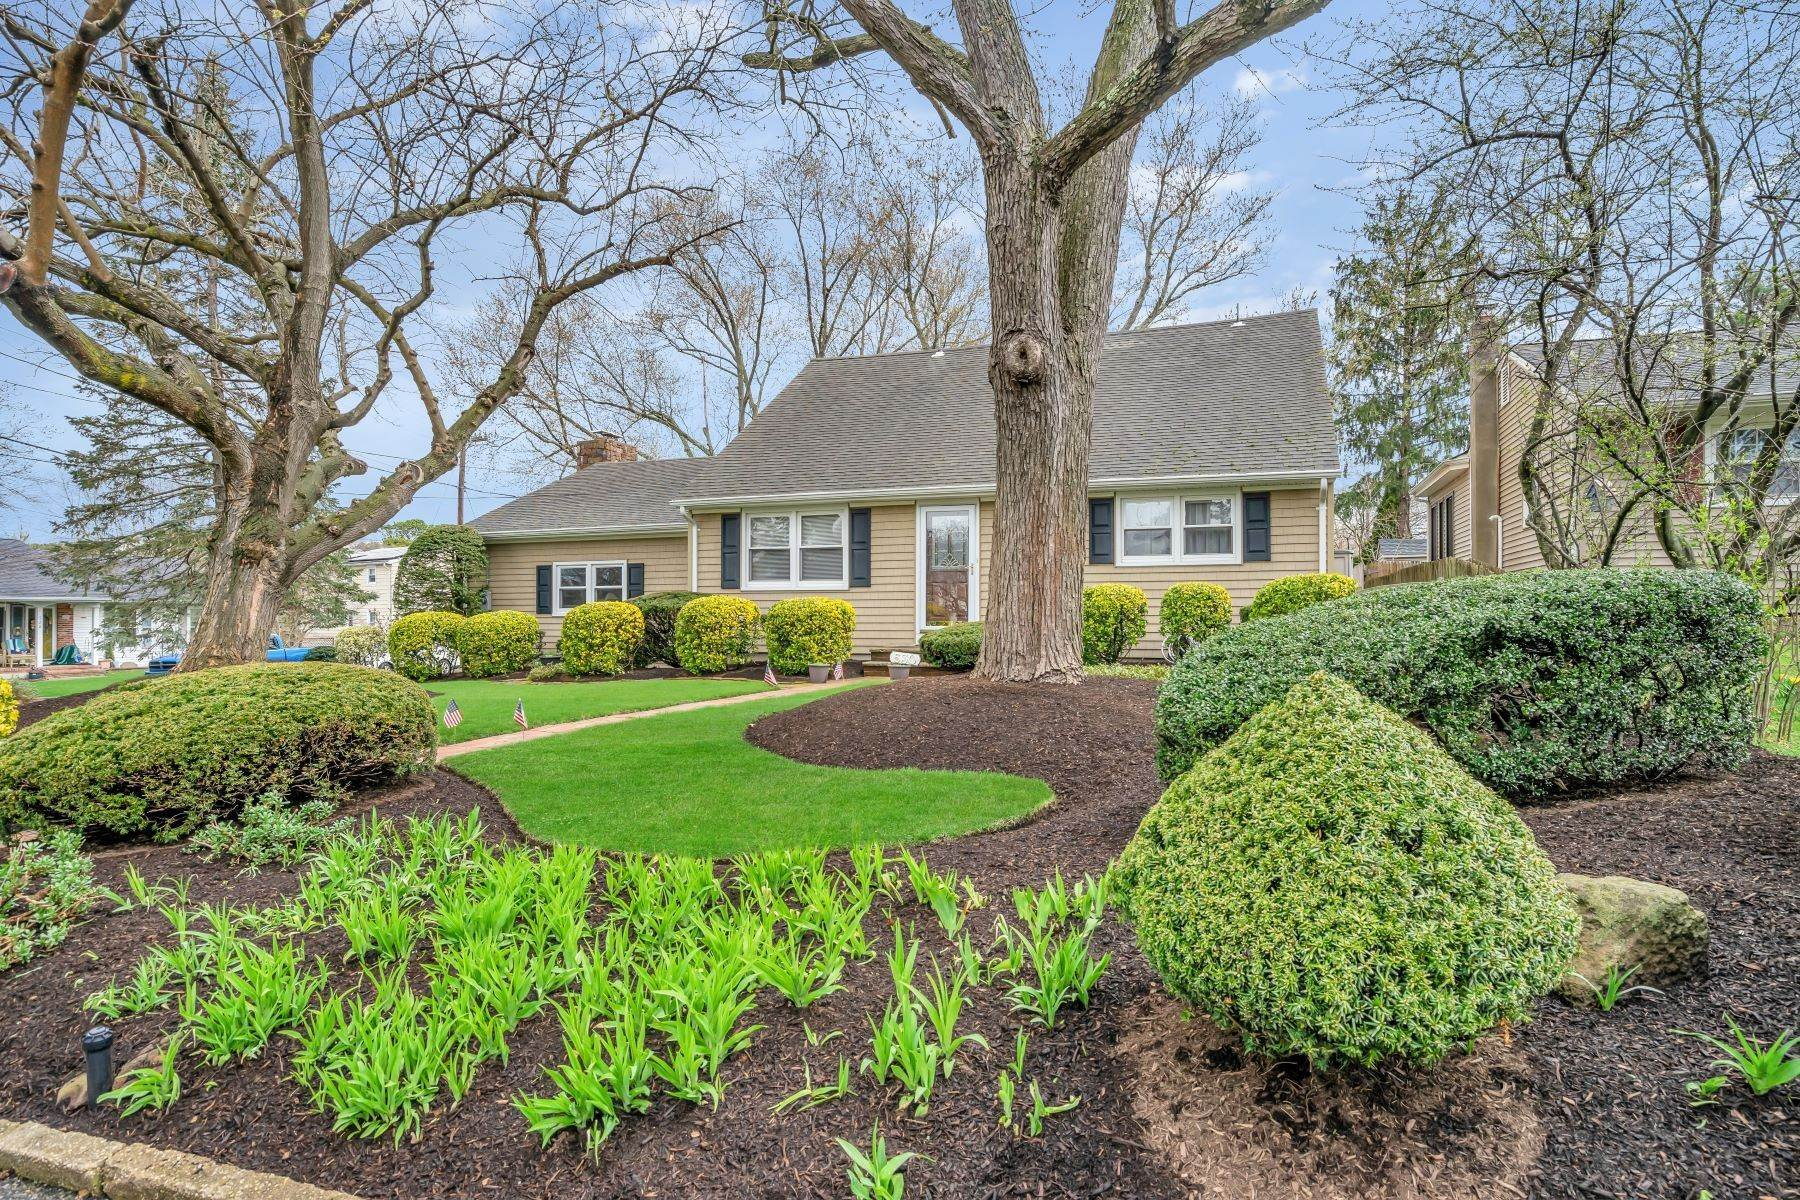 Single Family Homes for Sale at Highly Desirable Section 530 Eisenhower Drive N, Point Pleasant, New Jersey 08742 United States